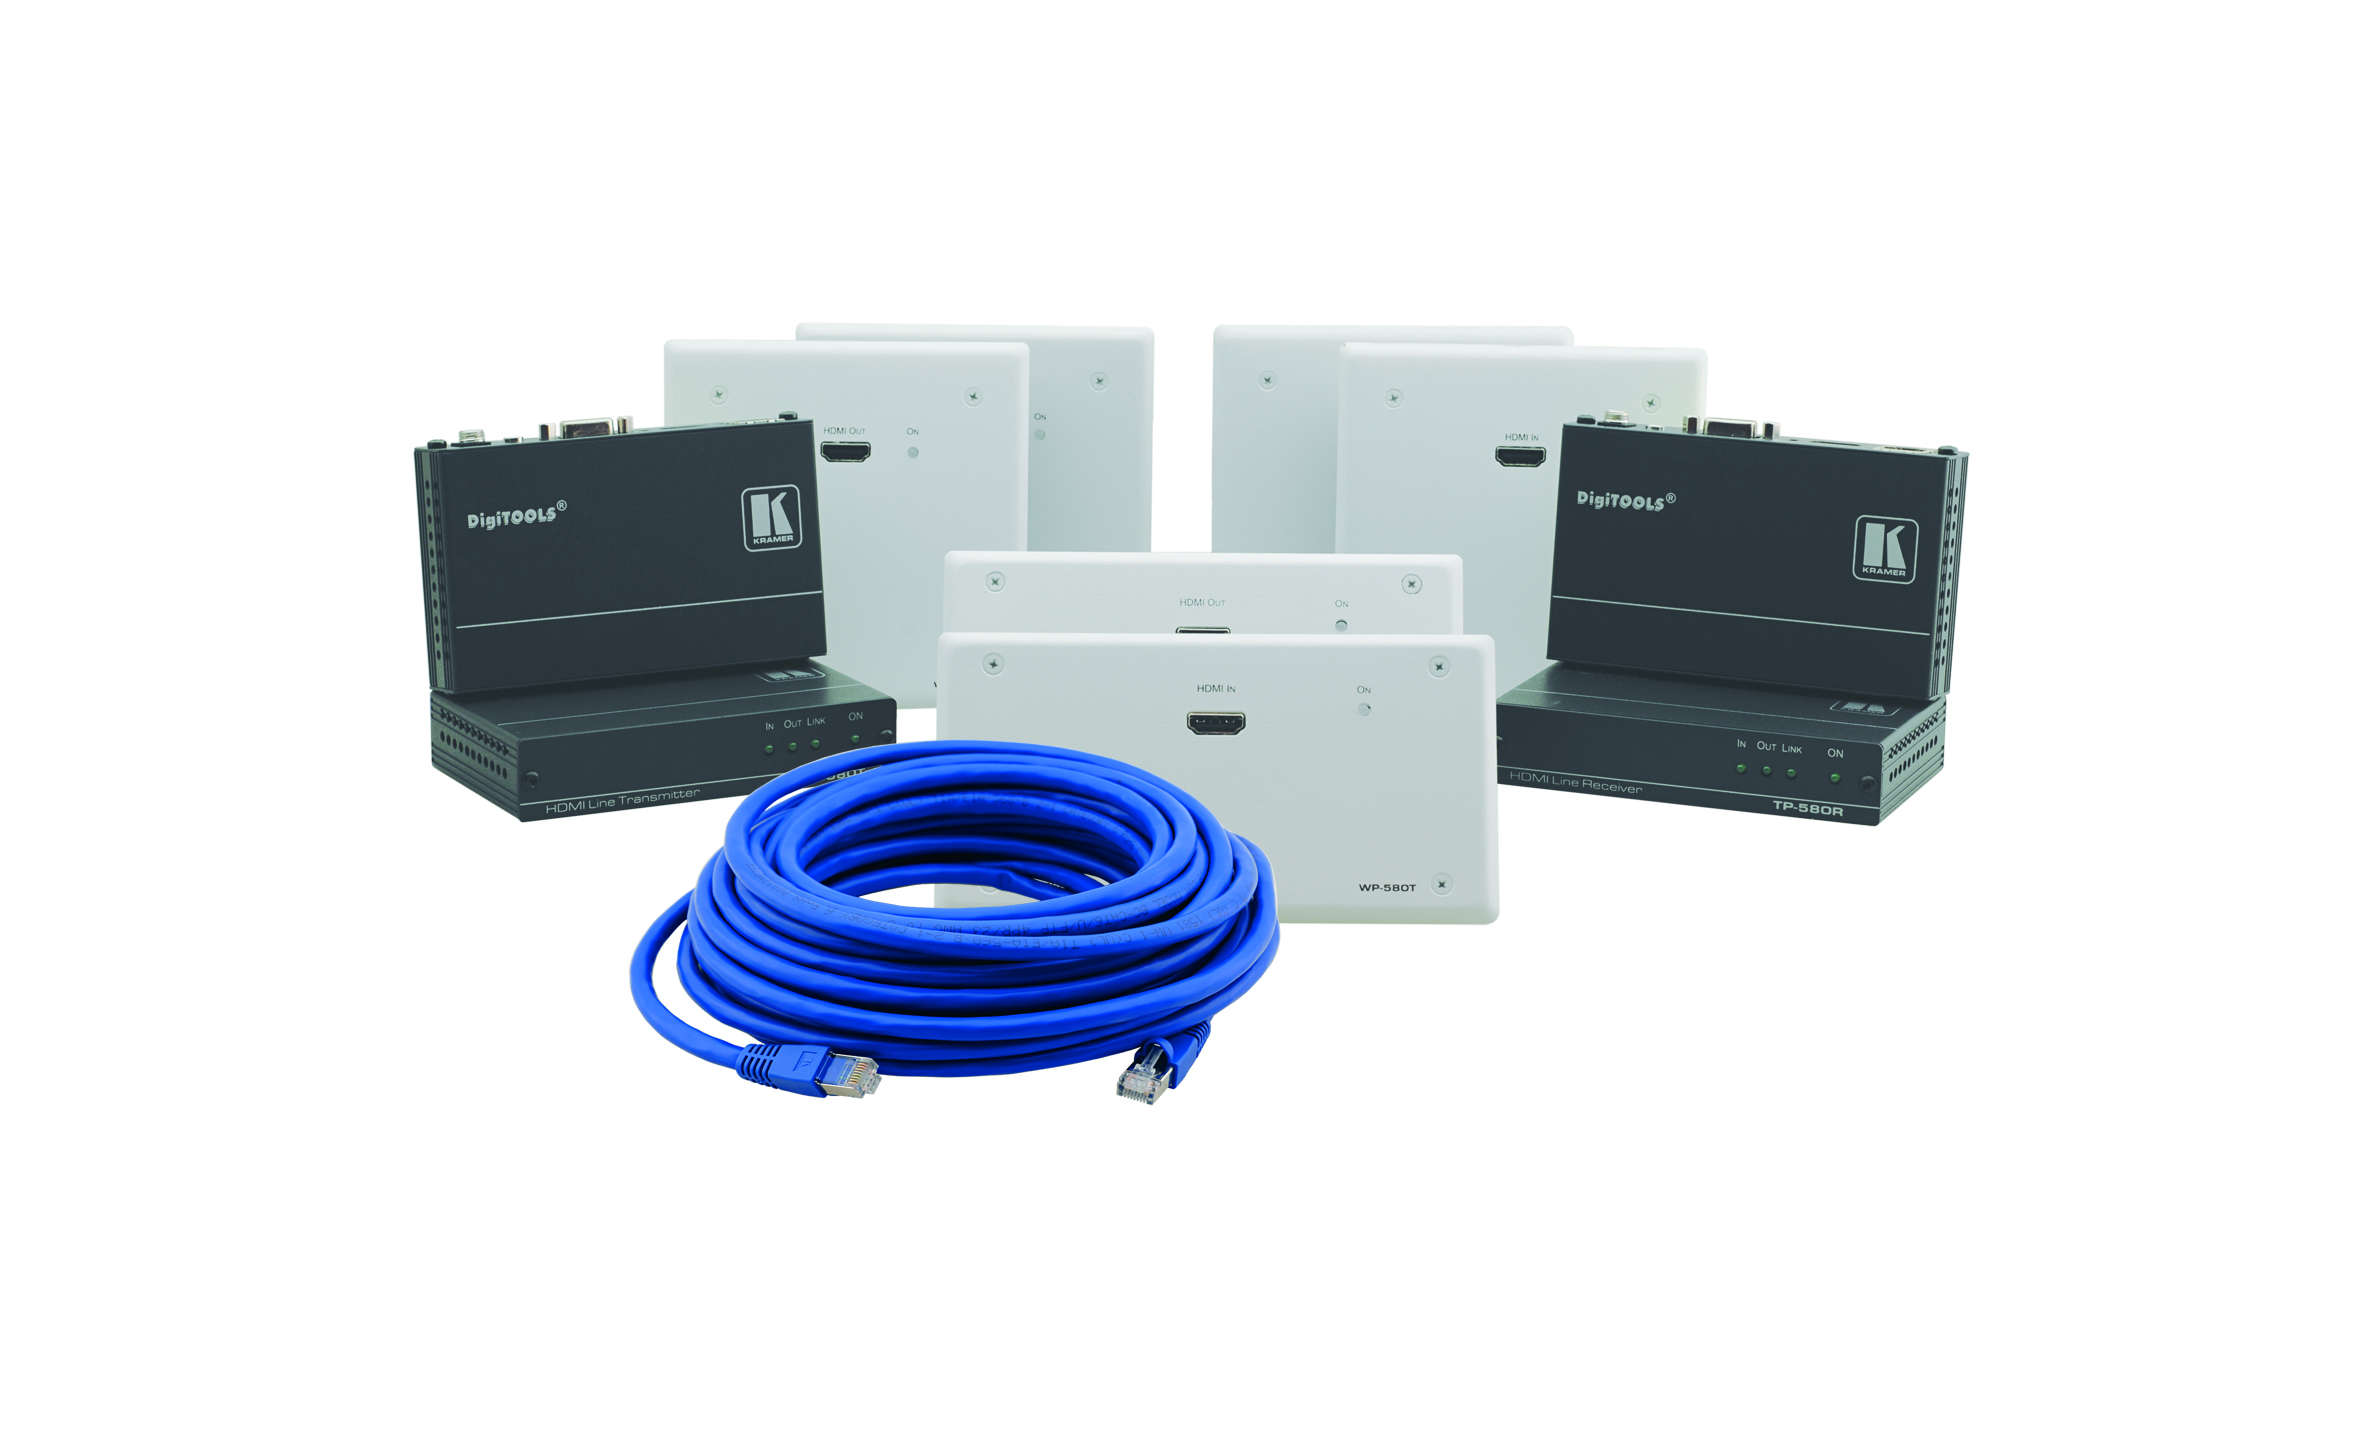 Kramer's Range Extenders, TP−580R/T, TP−580RXR/TXR, WP−580R/T and WP−580RXR/TXR officially certified by the HDBaseT Alliance